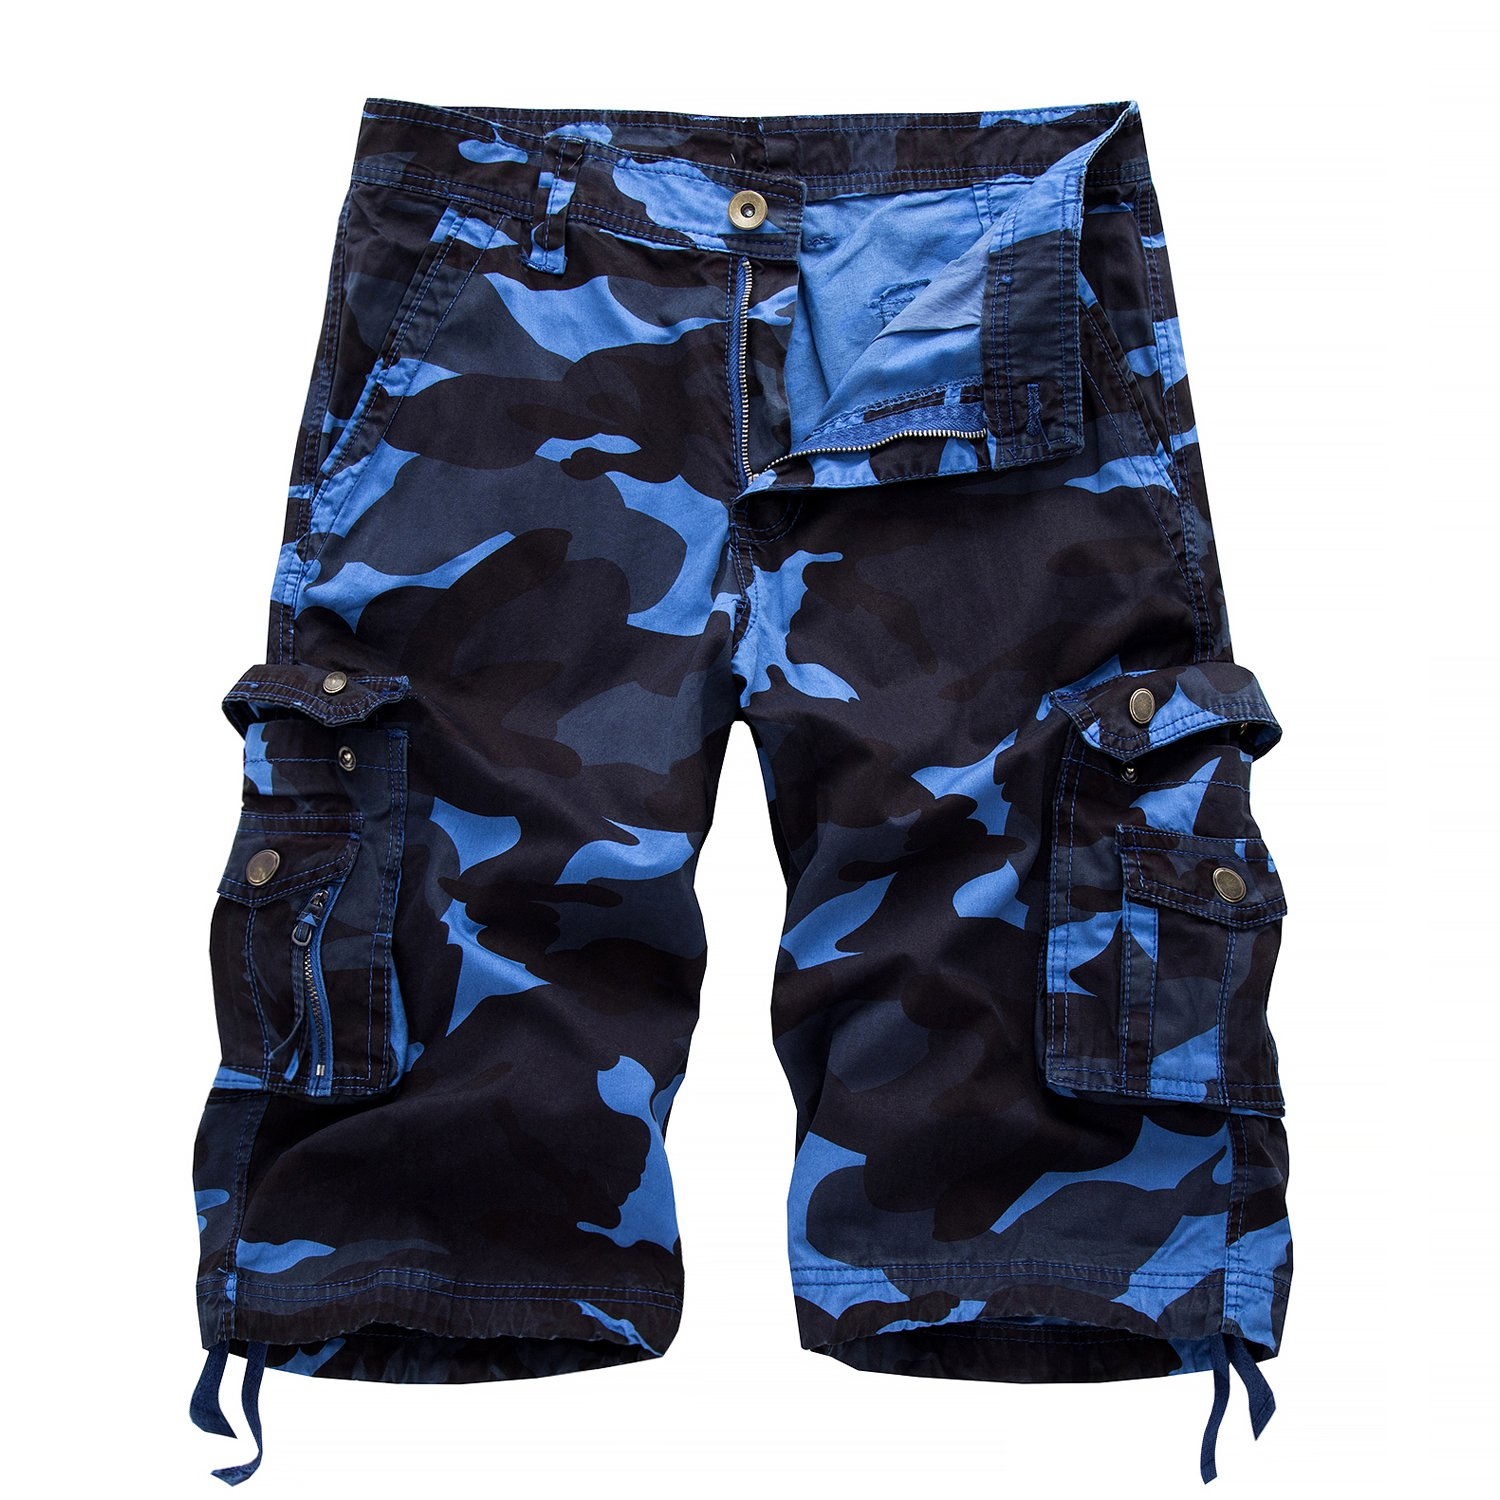 outlet store authorized site complete range of articles Hycsen Mens Cotton Relaxed Fit Fit Outdoor Camouflage Camo Cargo  Shorts-Royal Blue-30